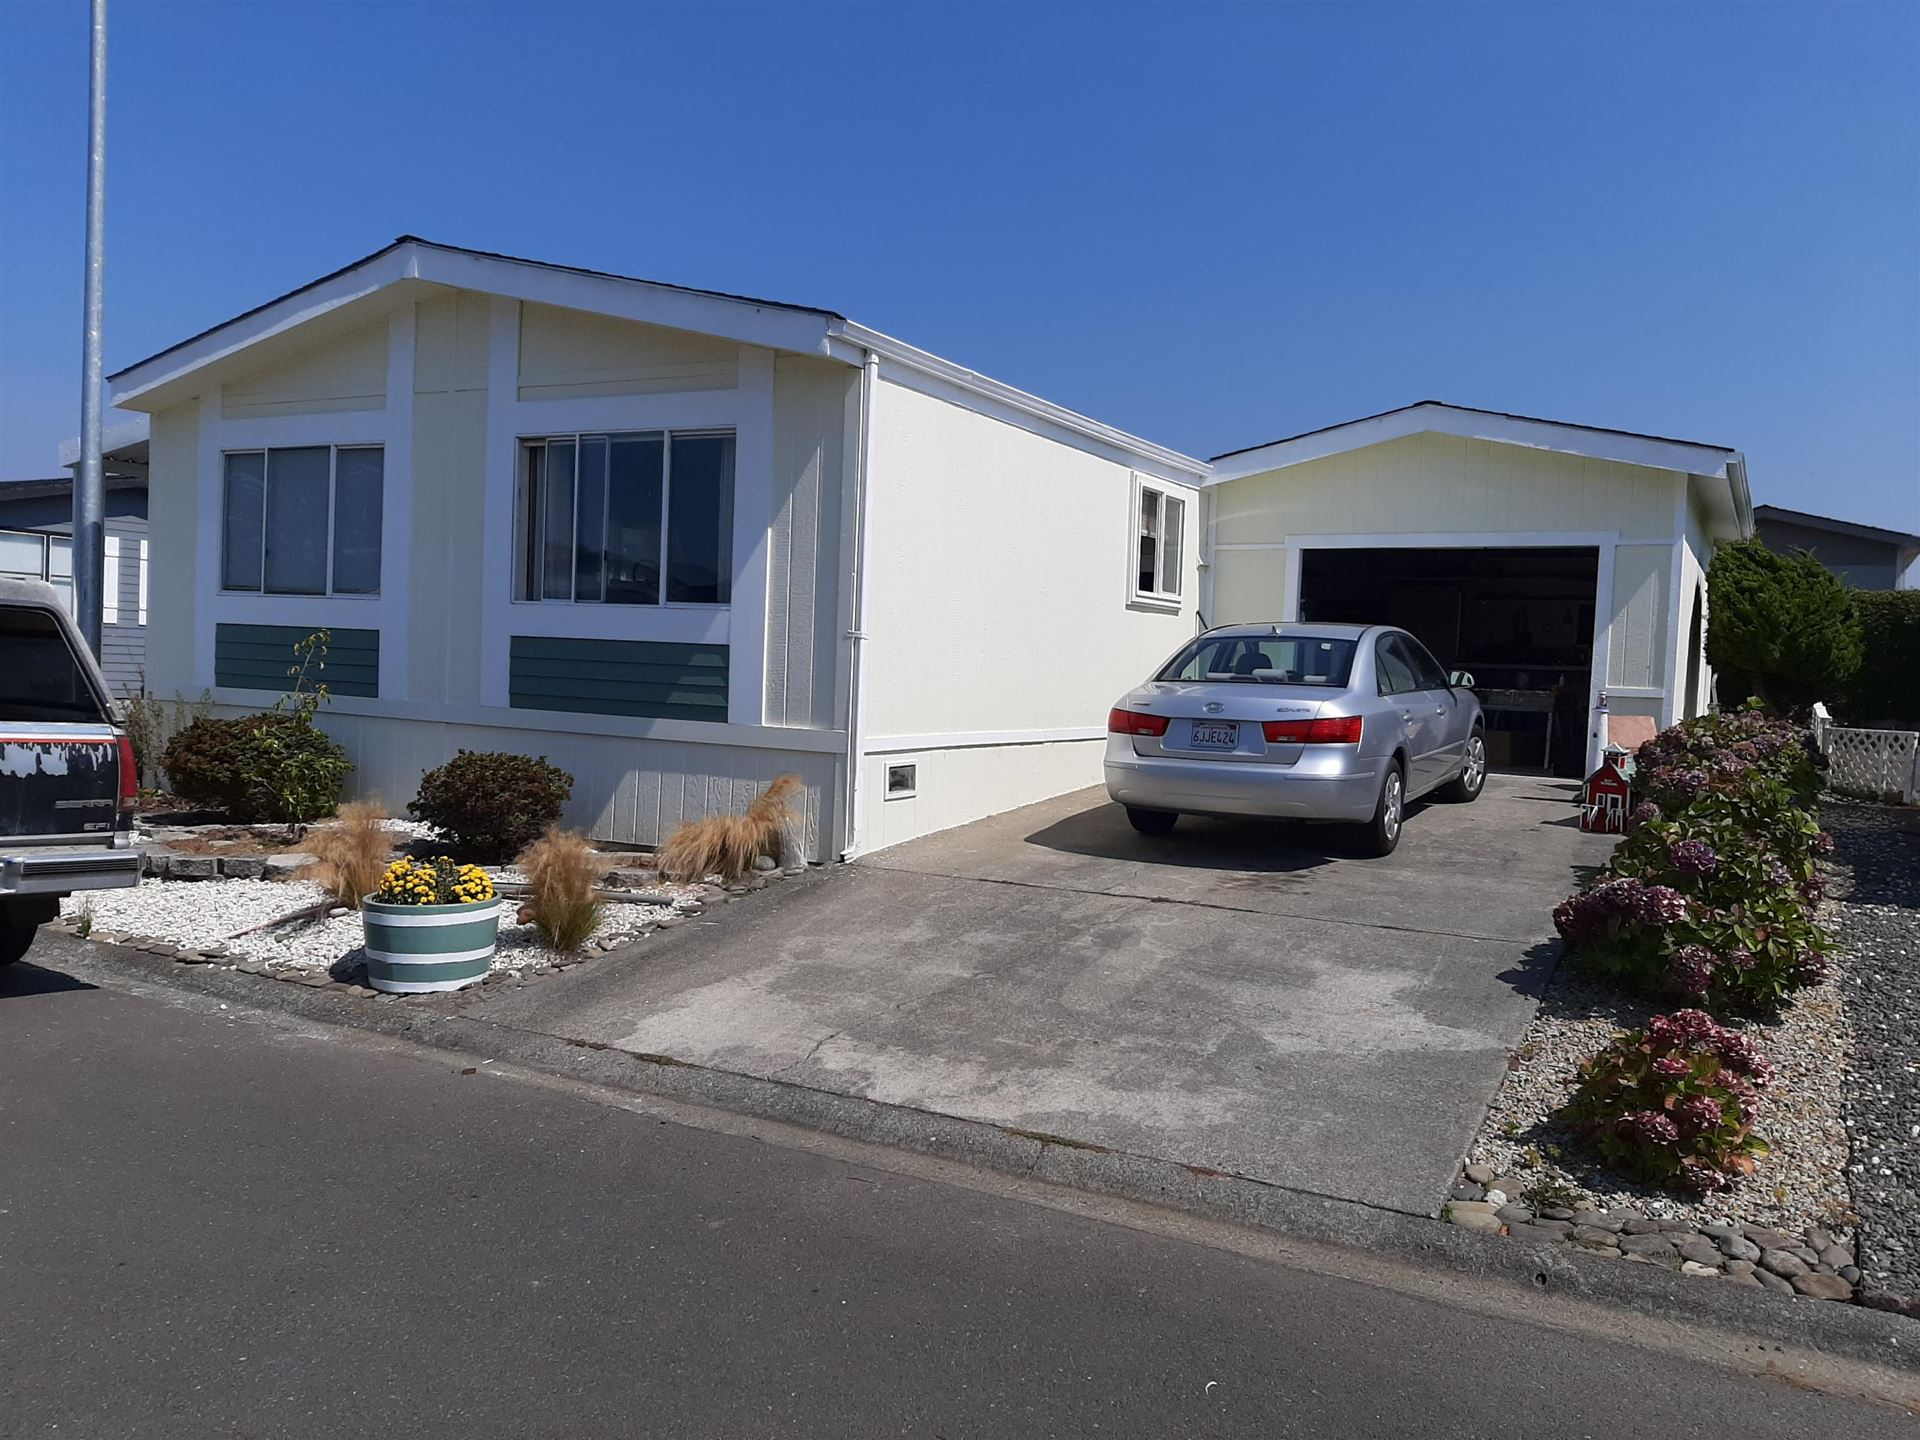 30 Sunshine Way, Humboldt Hill, CA 95503 - MLS#: 257394